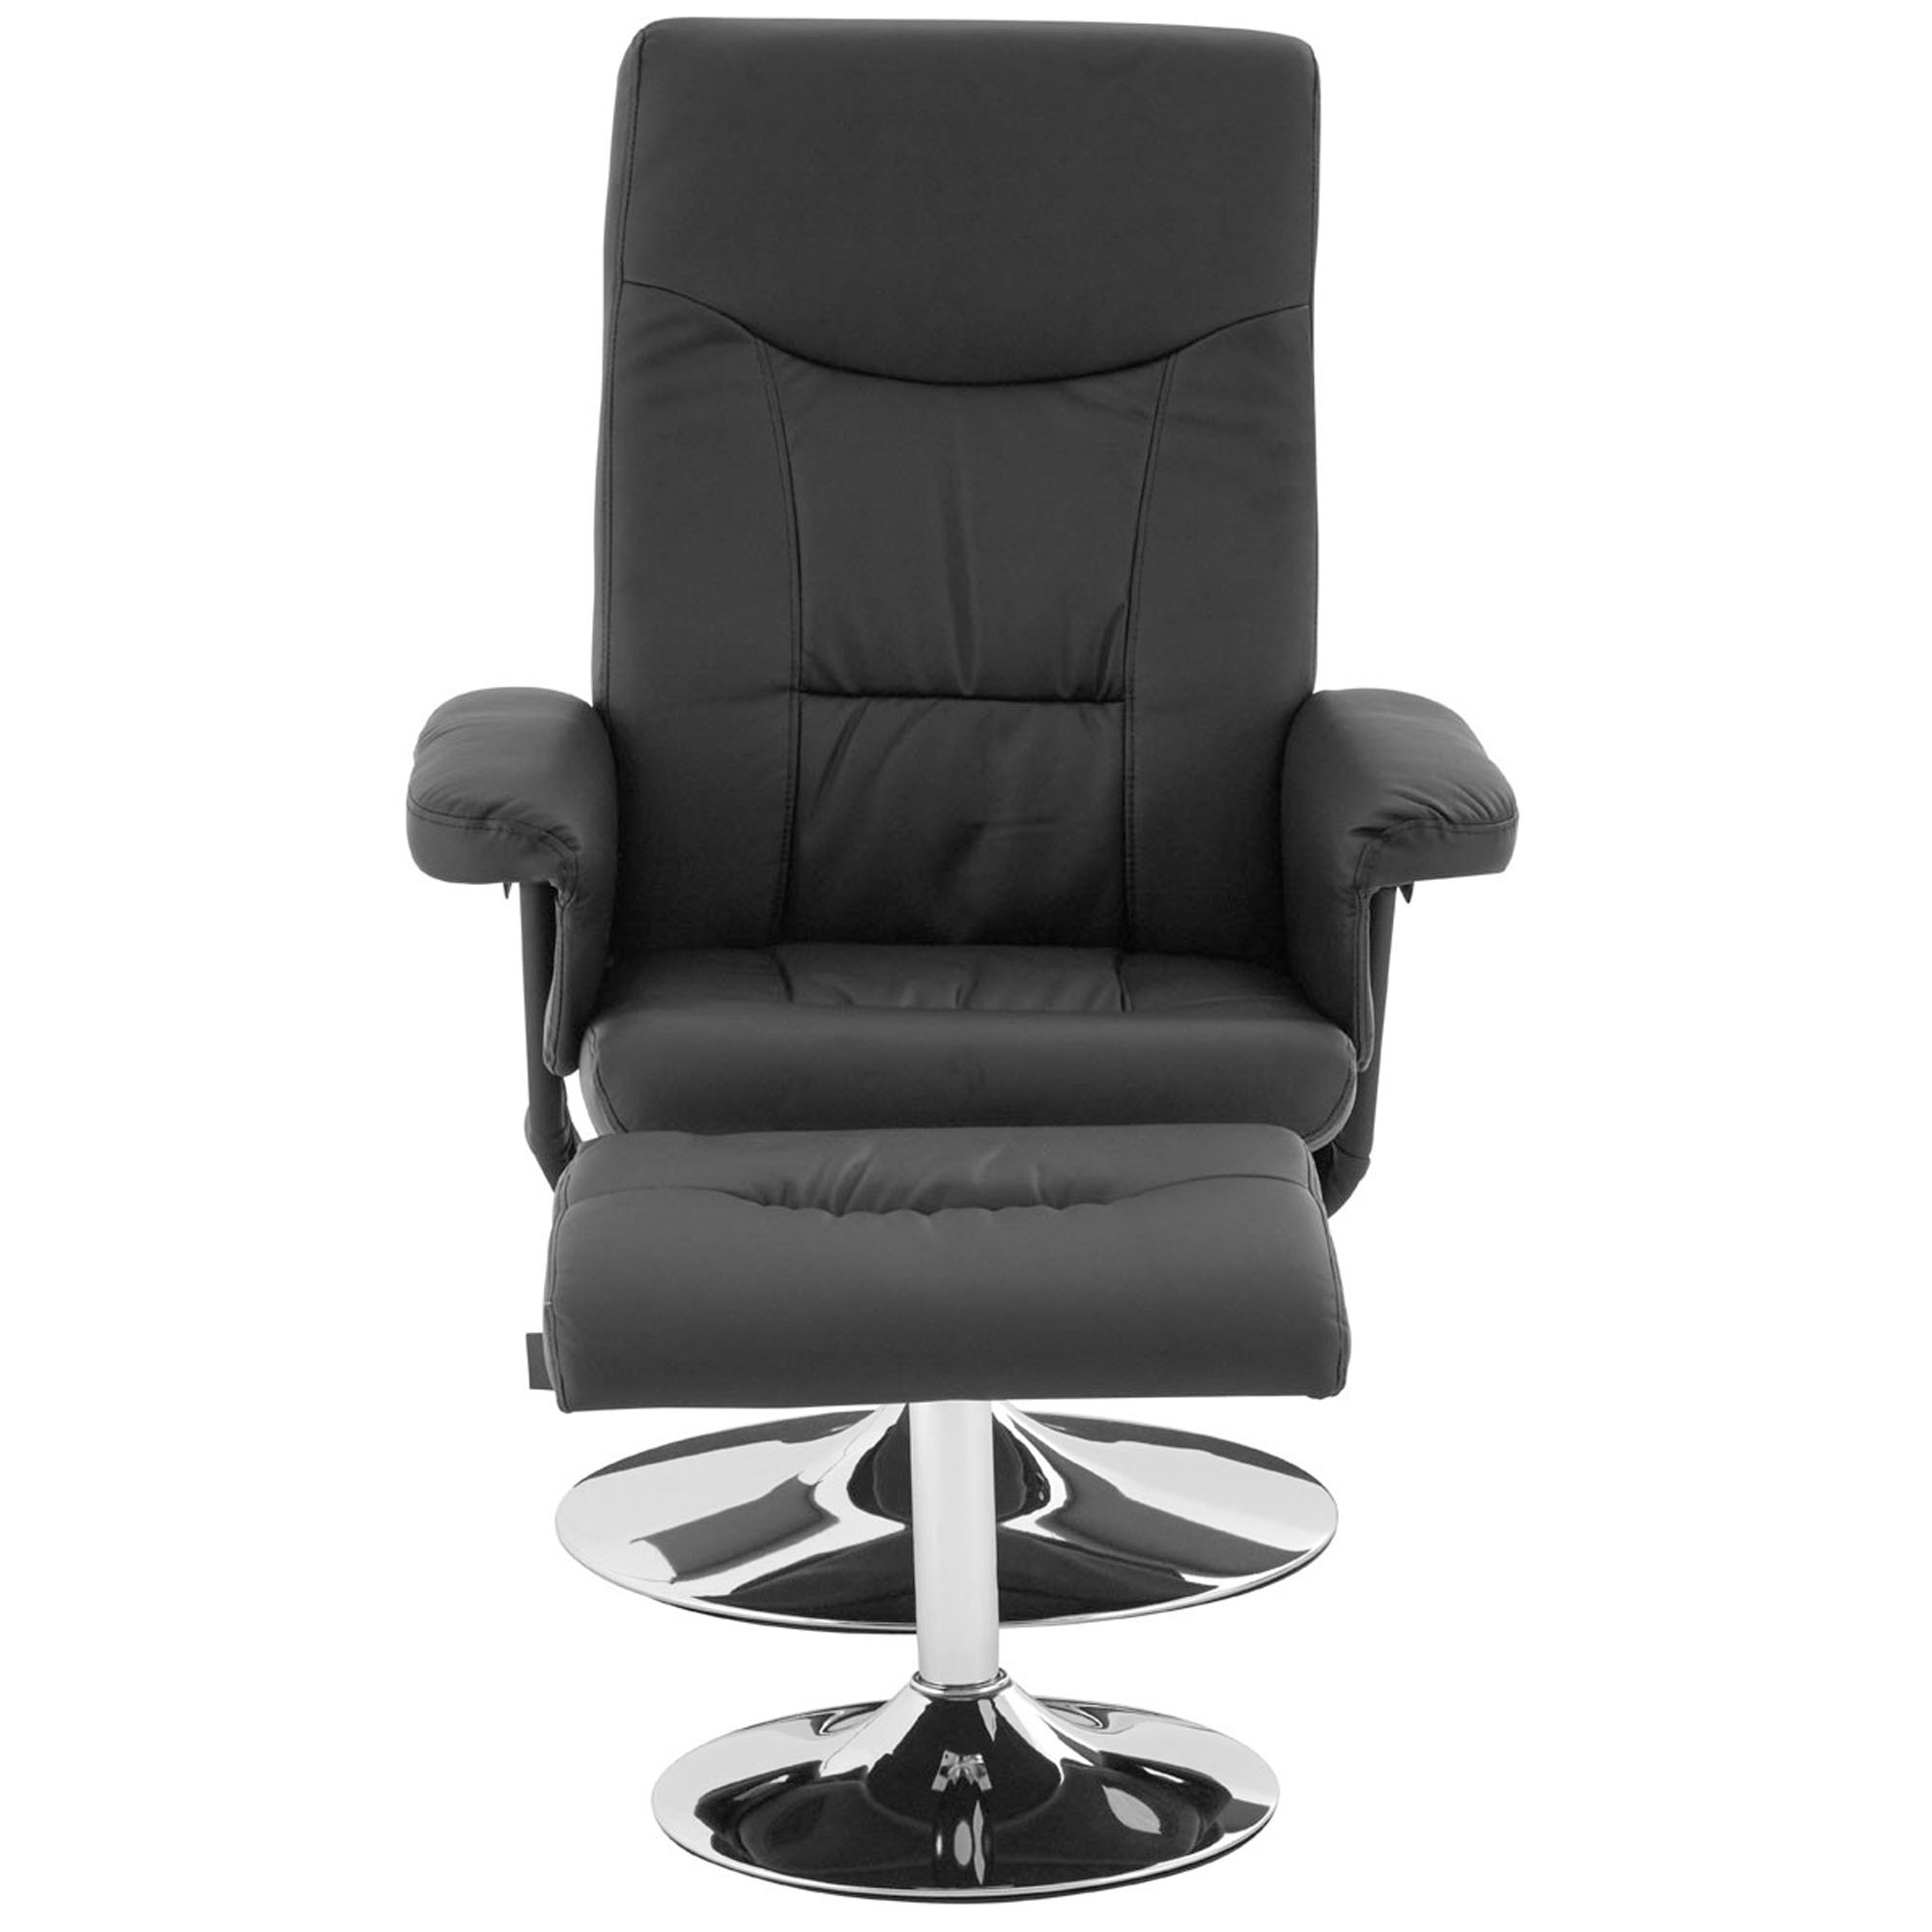 ip products modes chair brown recliner cup massage executive heat holders walmart control com choice swivel best w